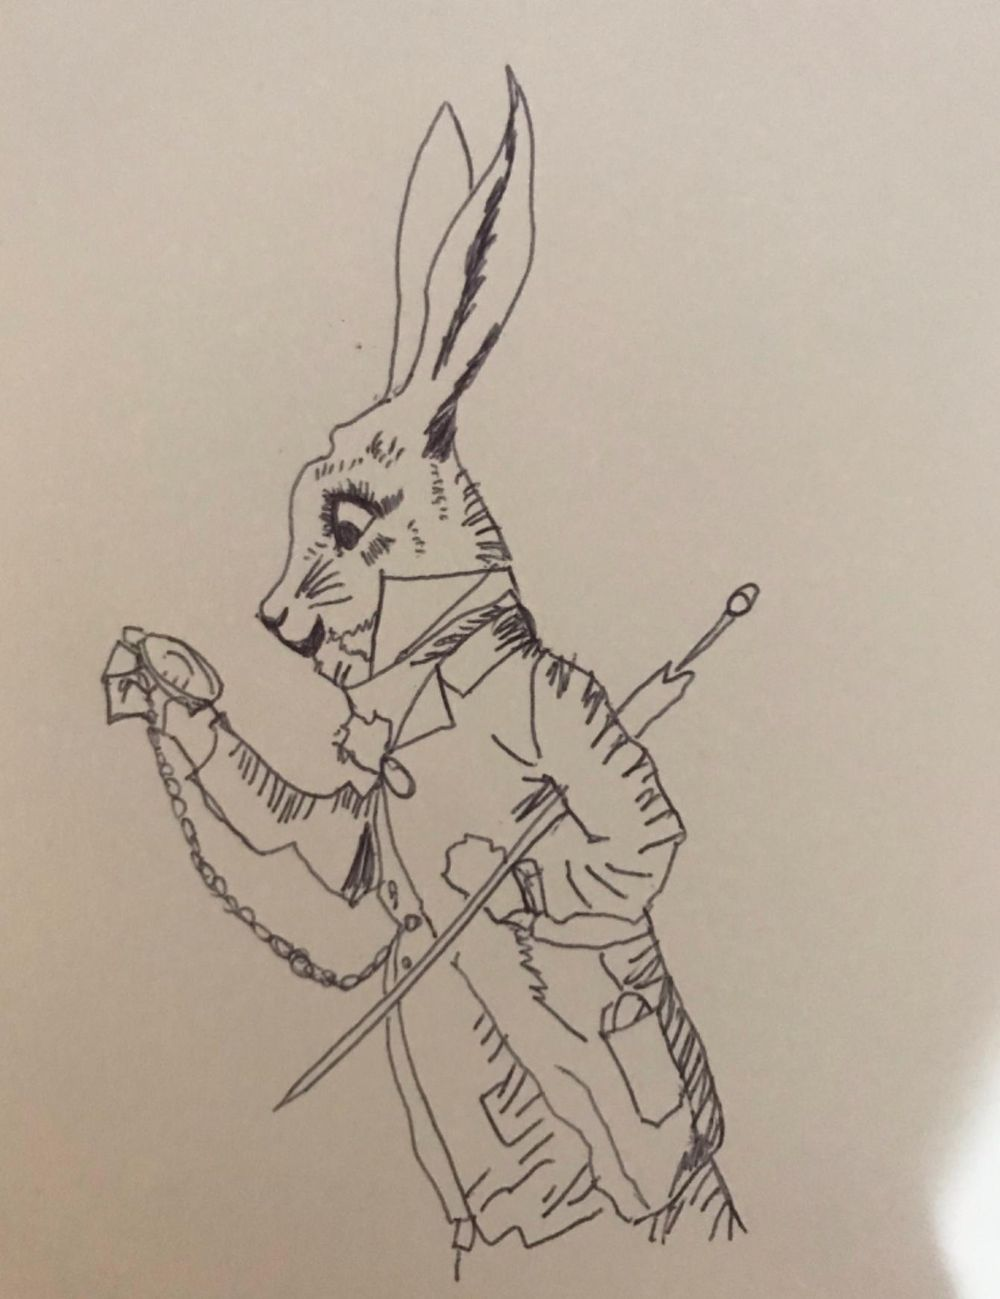 Upside down rabbit - image 1 - student project